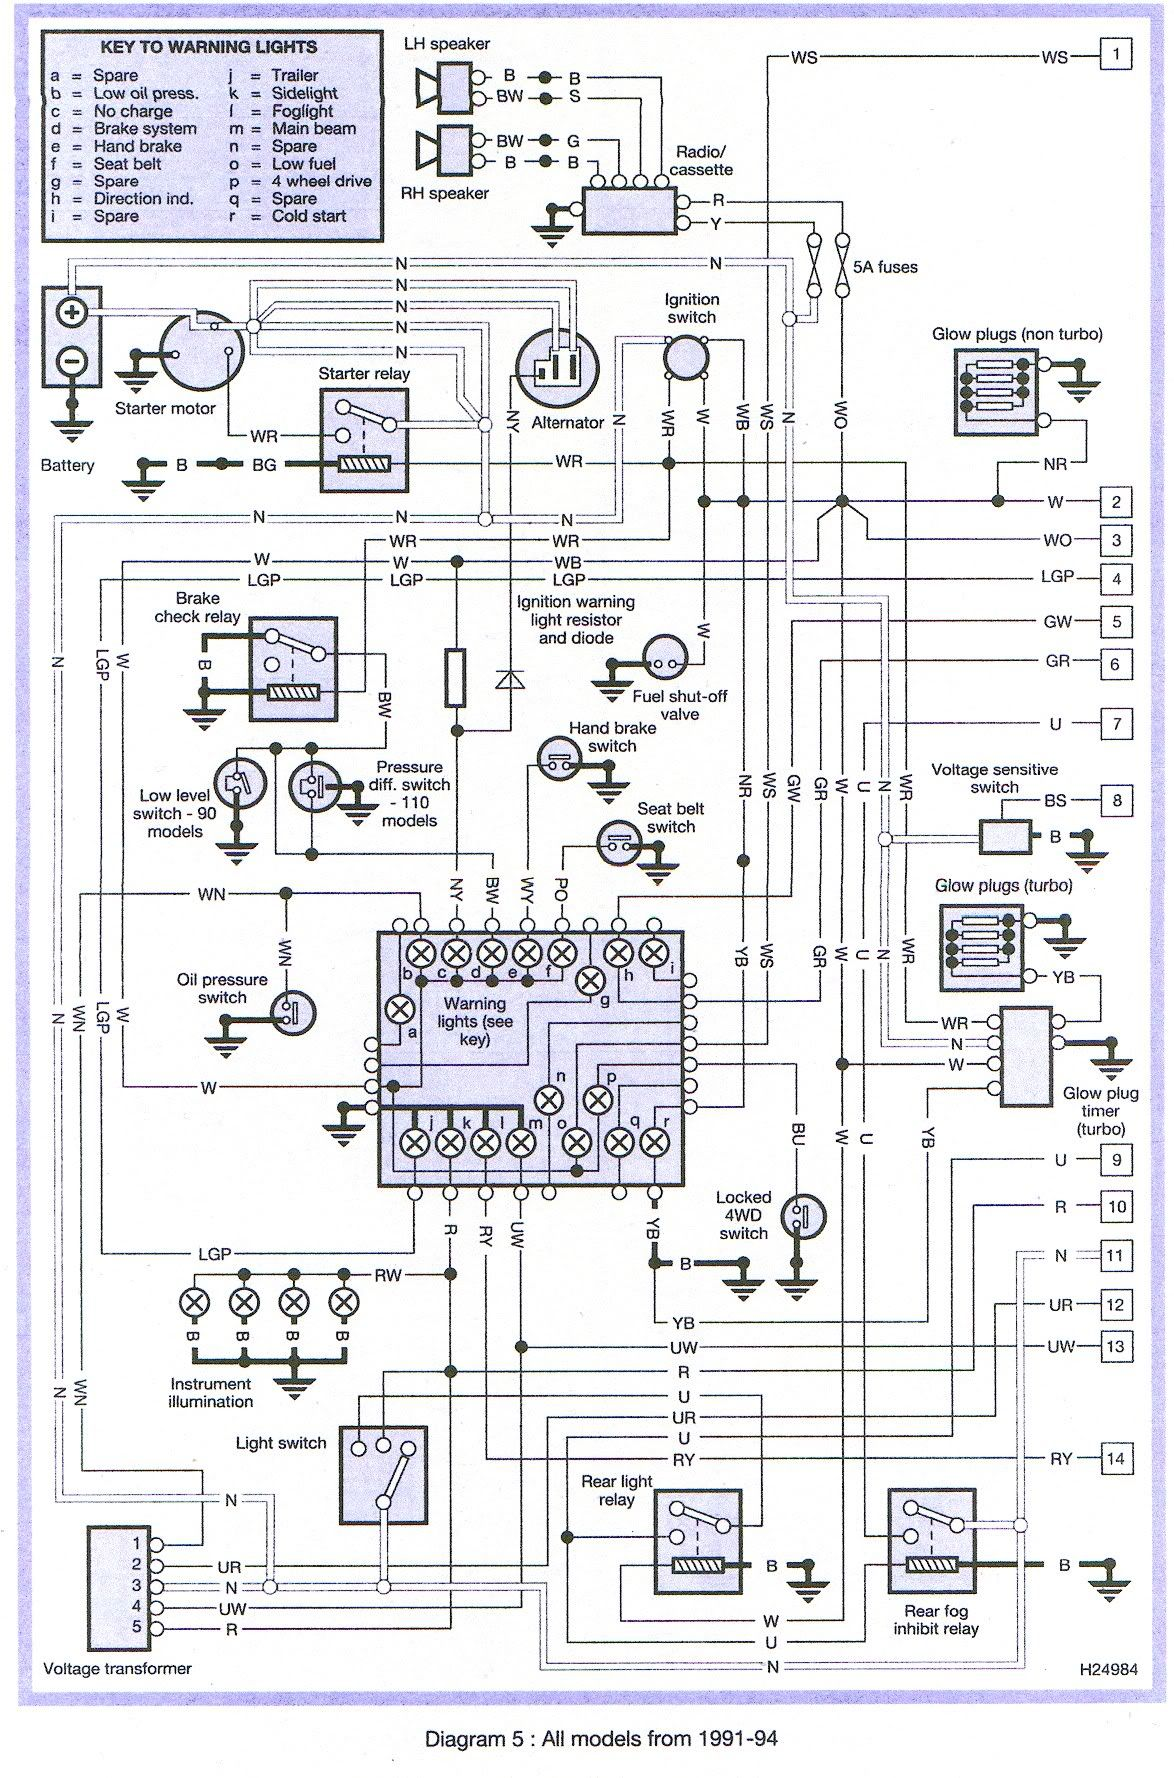 medium resolution of land rover discovery 1 radio wiring diagram wiring diagrams scematic mgb wiring diagram 97 land